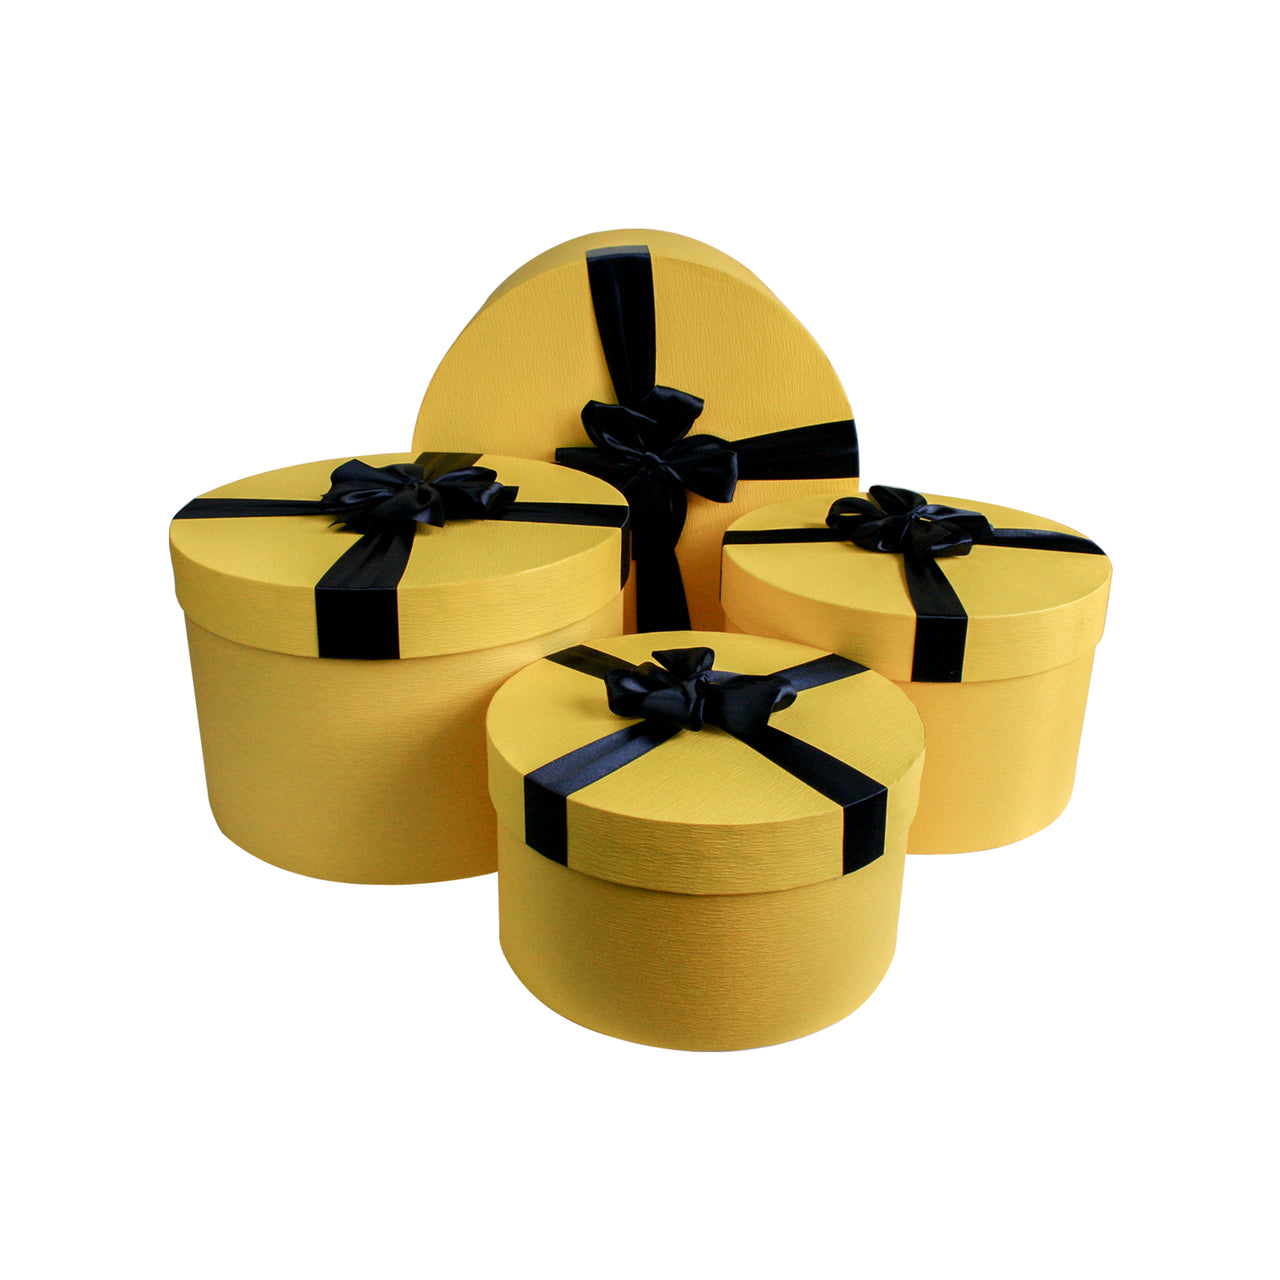 Yellow And Dark Blue Cylindrical Gift Box - Set Of 4